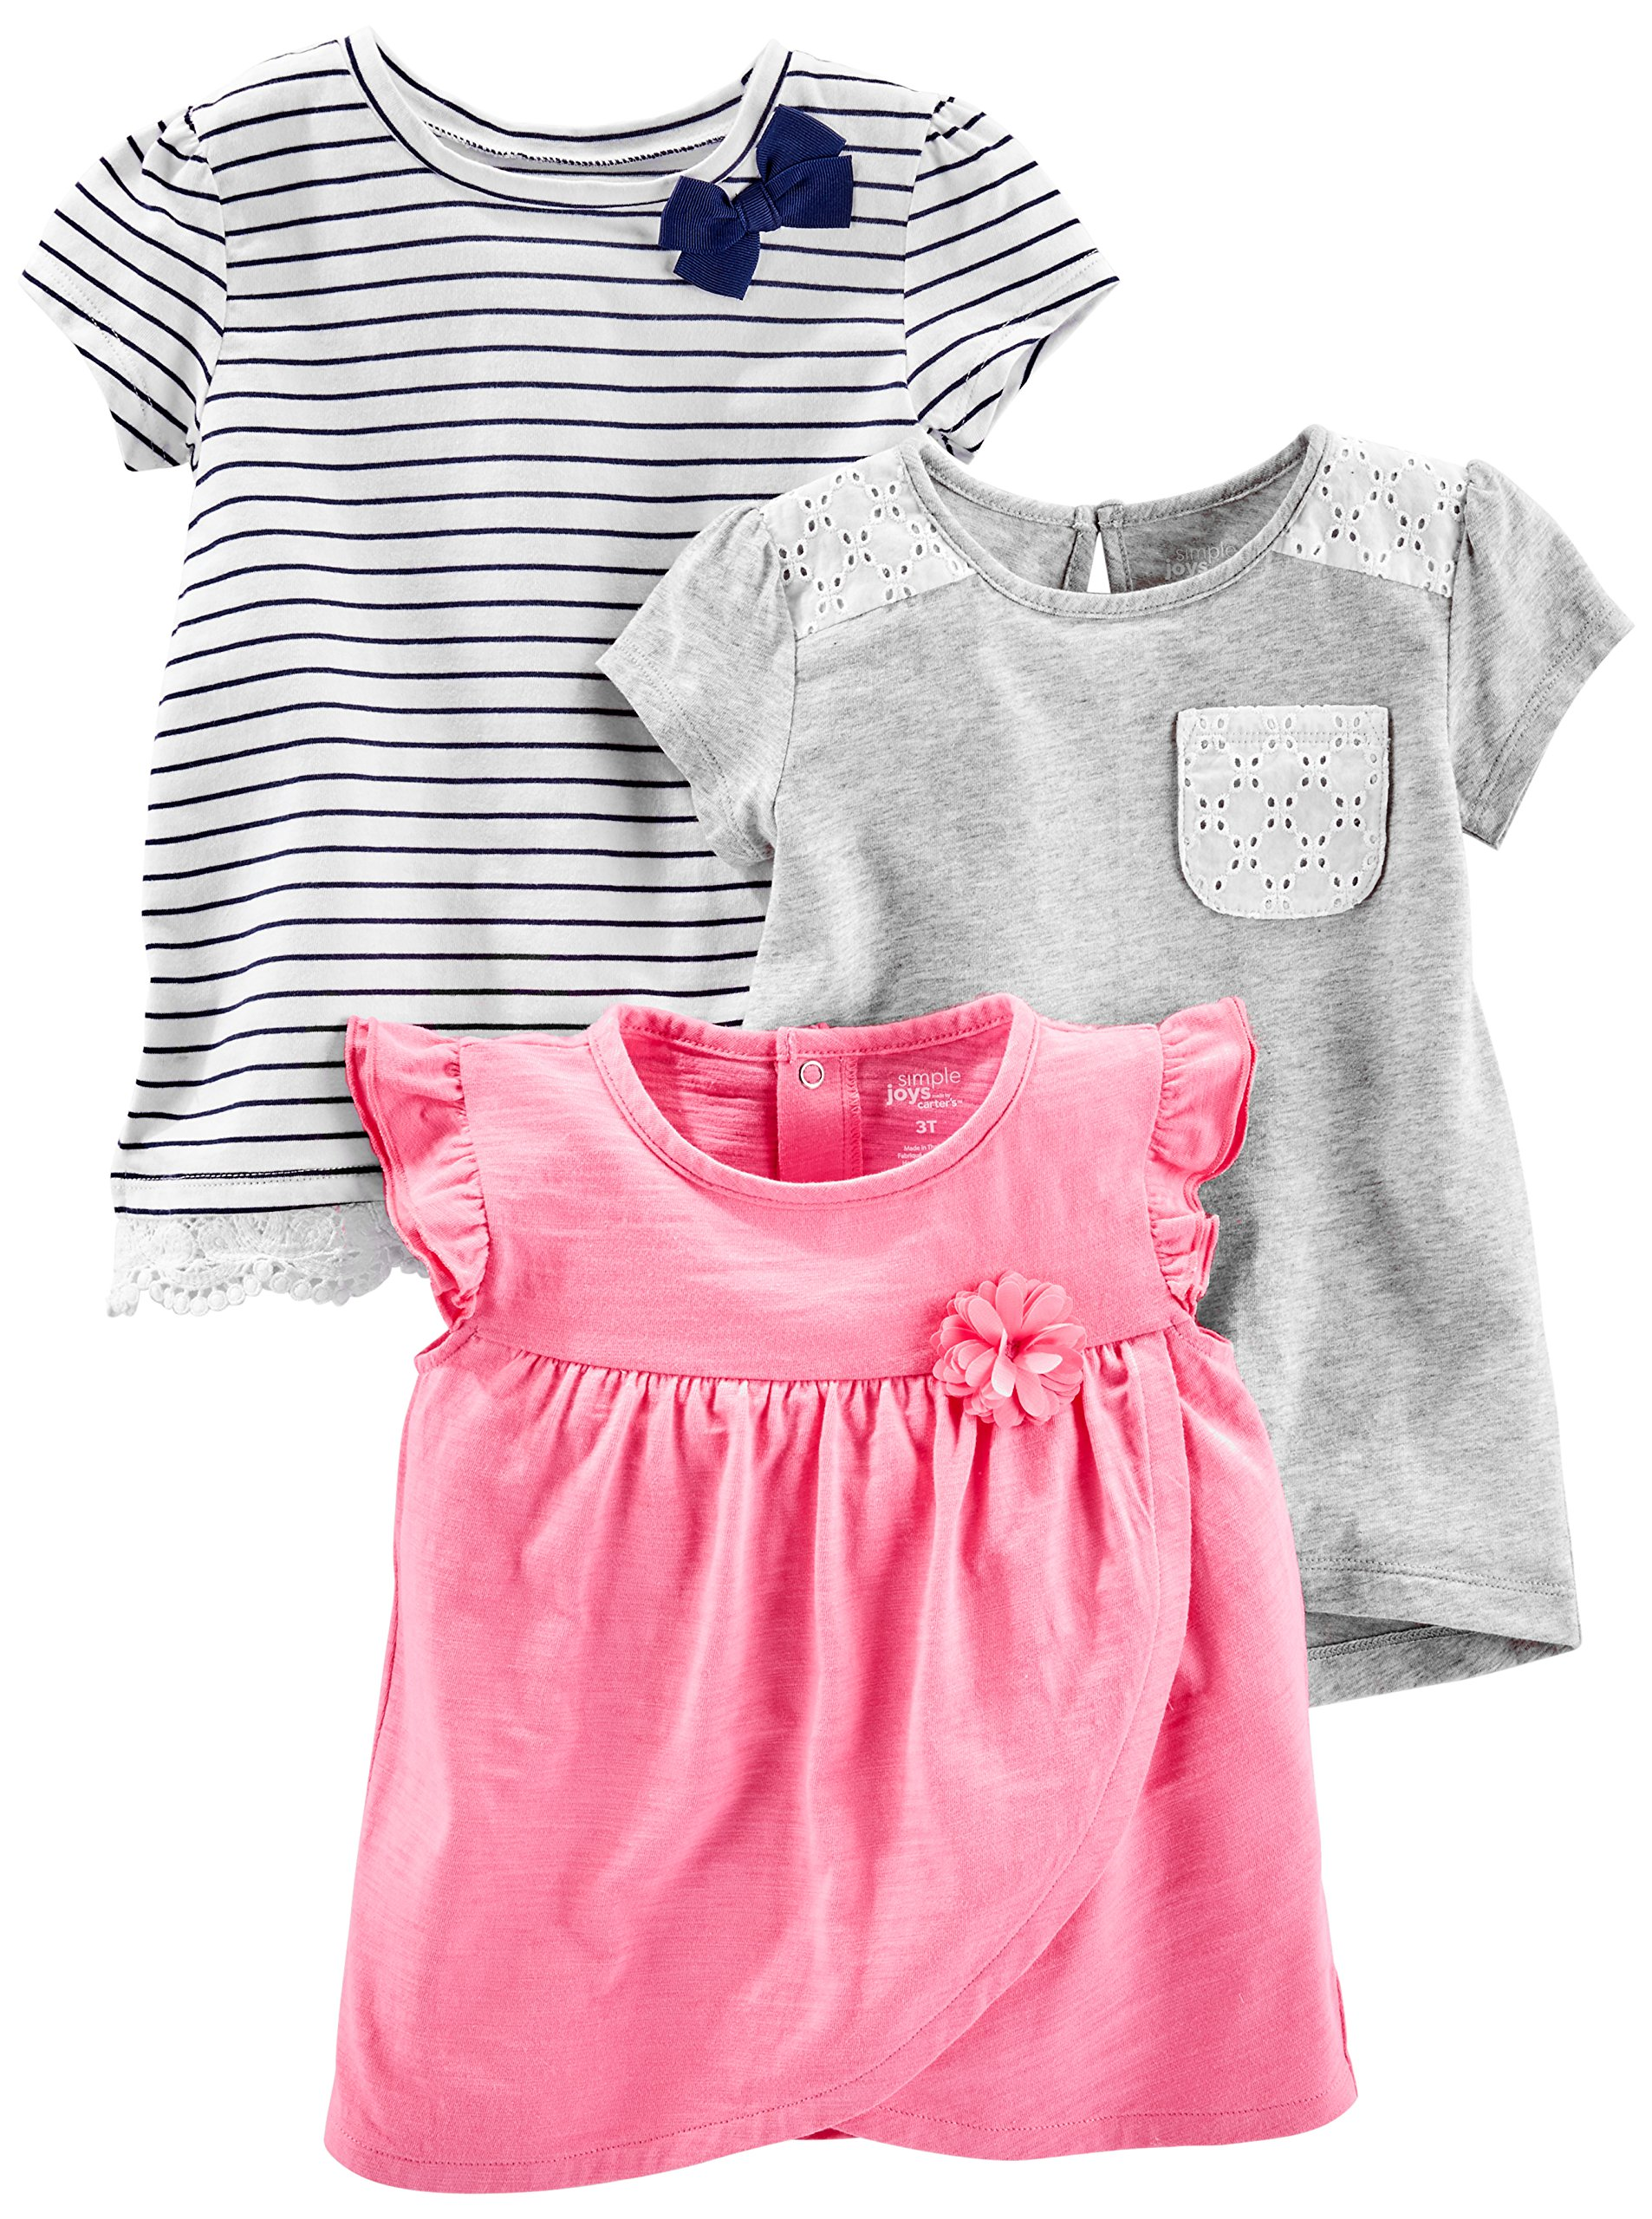 Simple Joys by Carter's Baby Girls' Toddler 3-Pack Short Sleeve Tops, Gray, Pink, Stripe, 2T by Simple Joys by Carter's